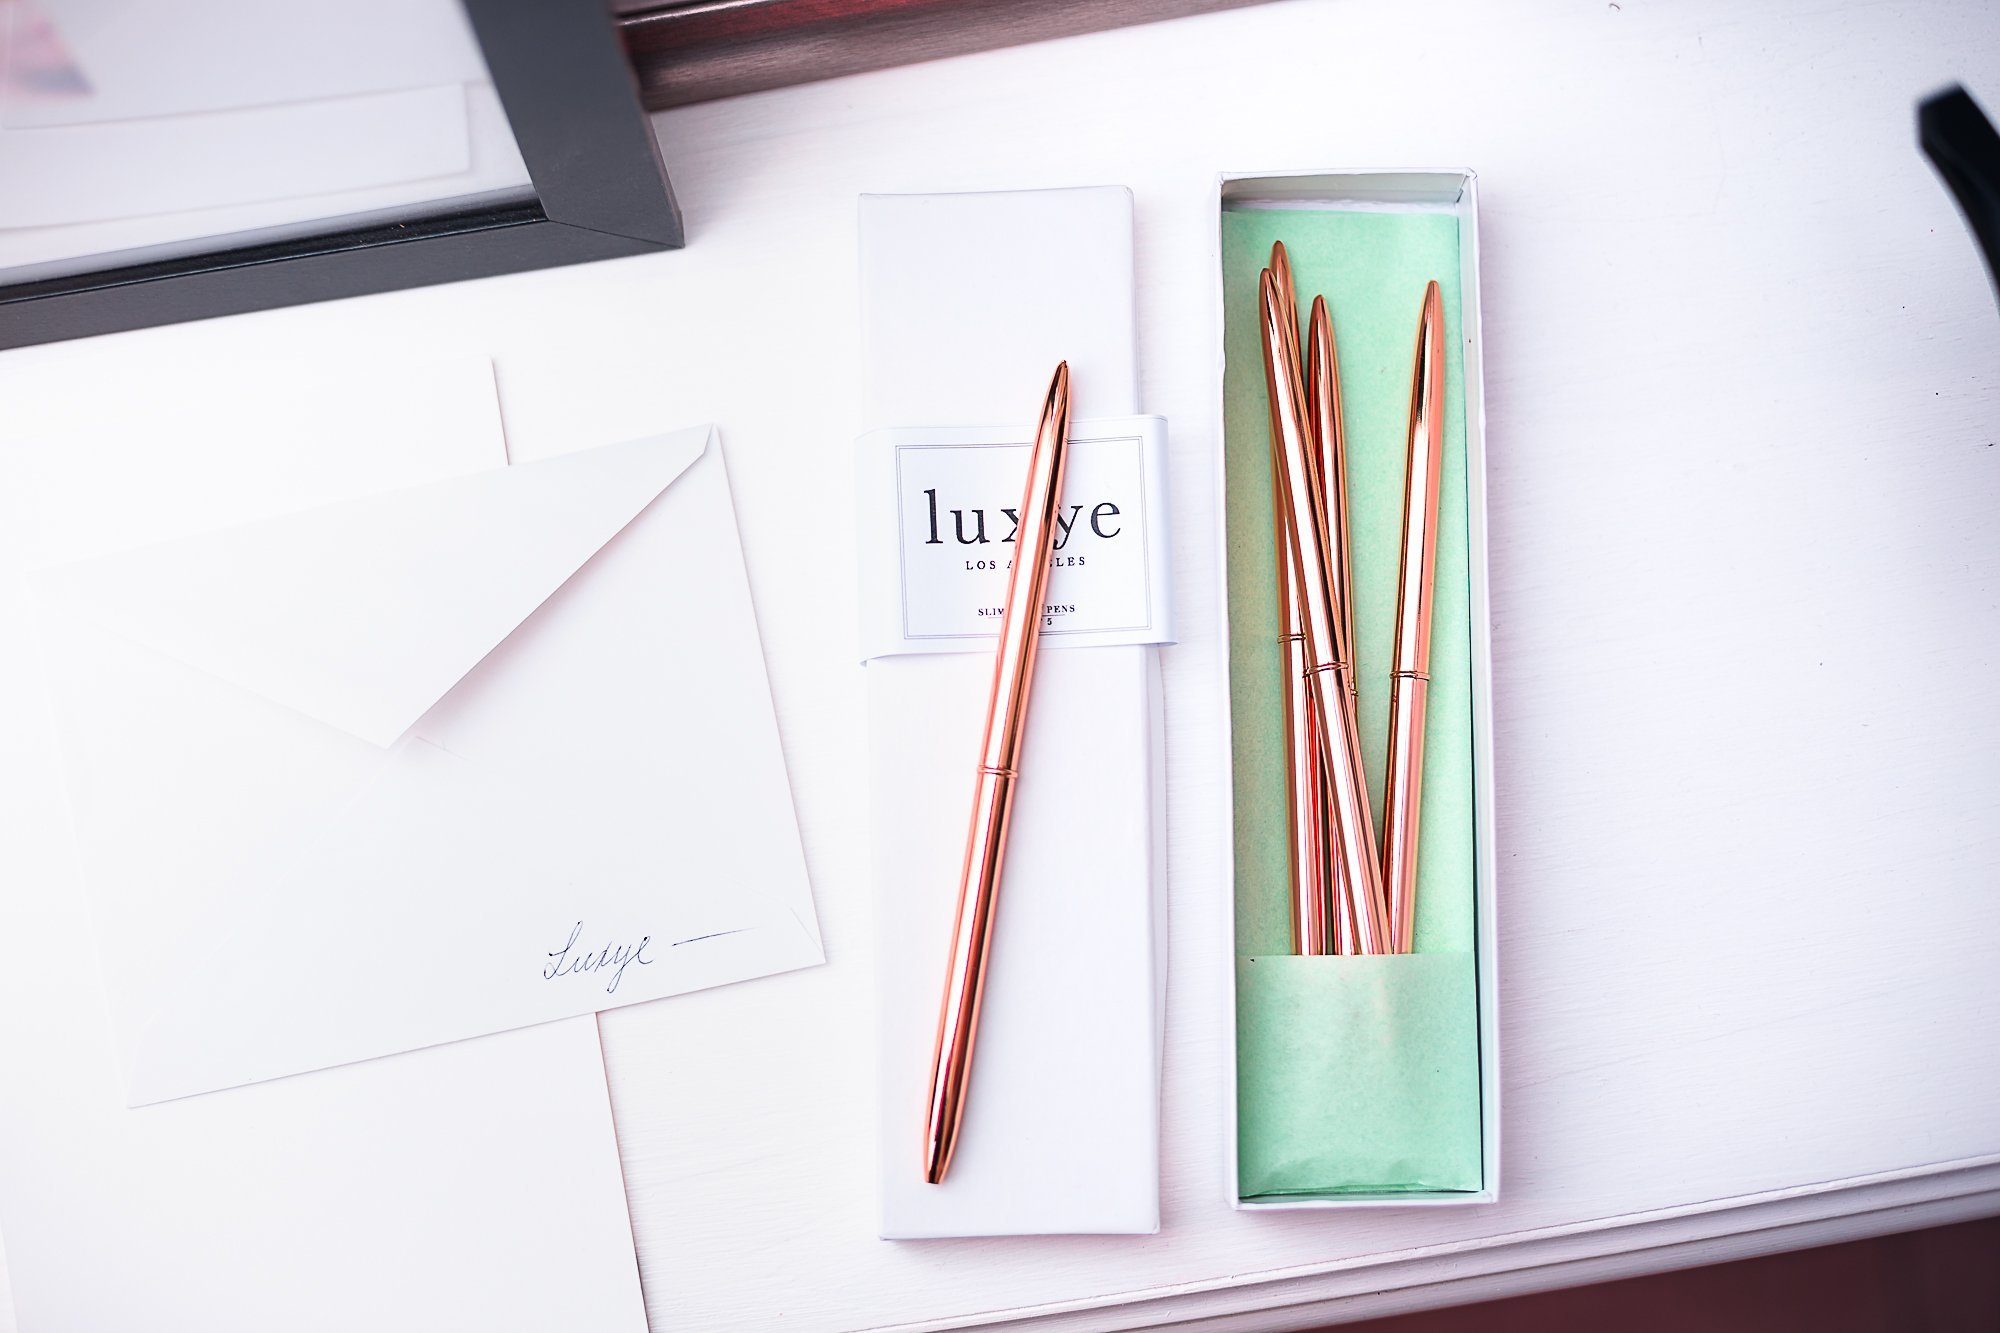 Rose Gold Pens 6 Piece Pen Set - Lightweight Rose Gold Metal Ballpoint Pen in Black Ink in White Glossy Gift Box - Rose Gold Office Decor Supplies (Rose Gold / Black Ink) by Luxye (Image #5)